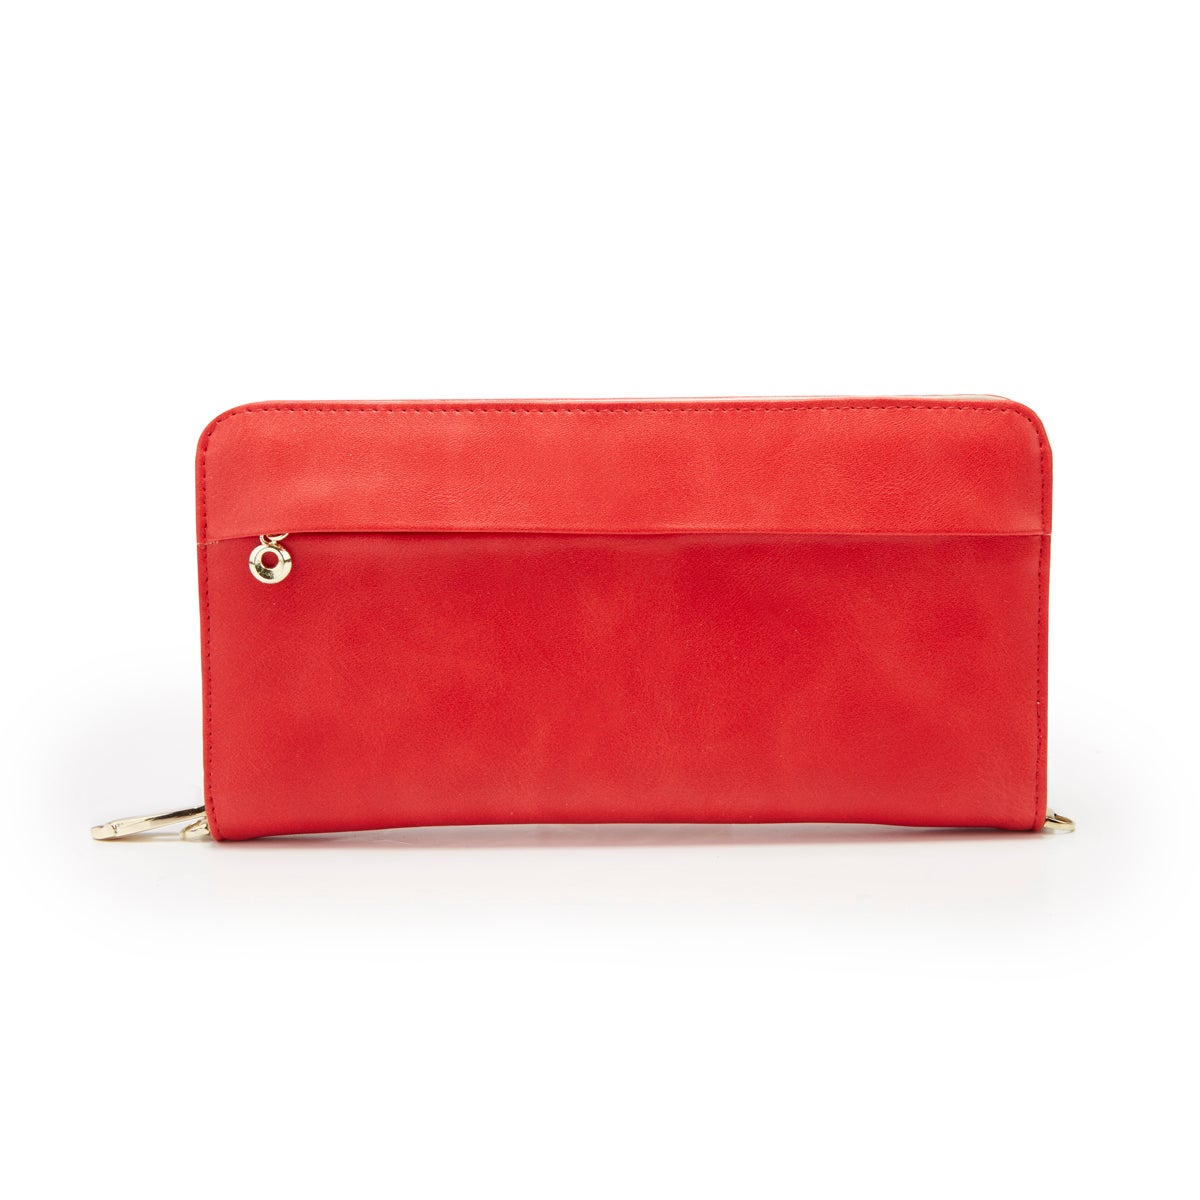 Lds red zip around convertible wallet